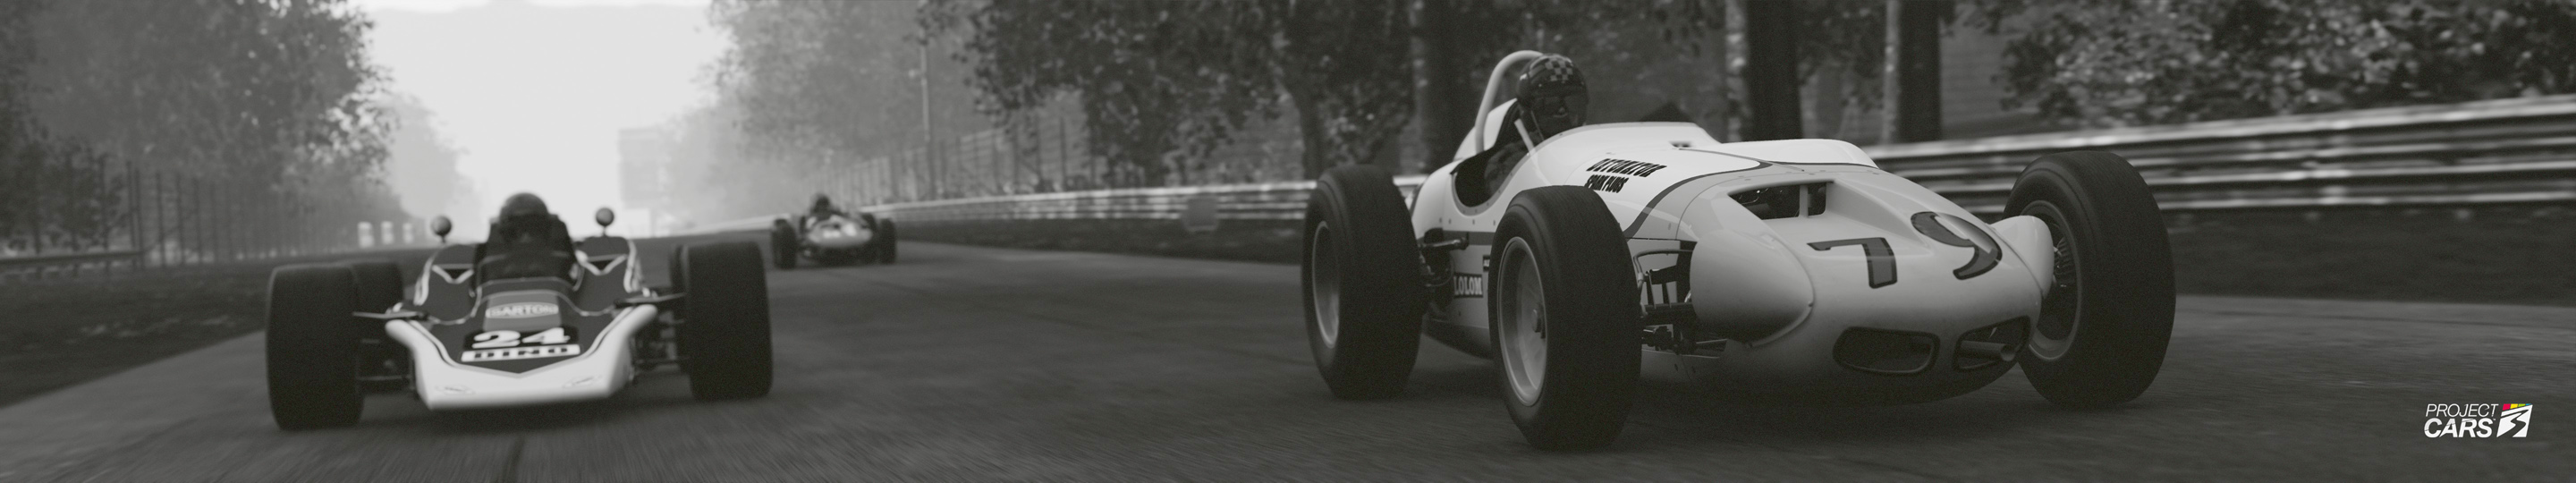 3 PROJECT CARS 3 WATSON ROADSTER at MONZA HISTORIC copy.jpg